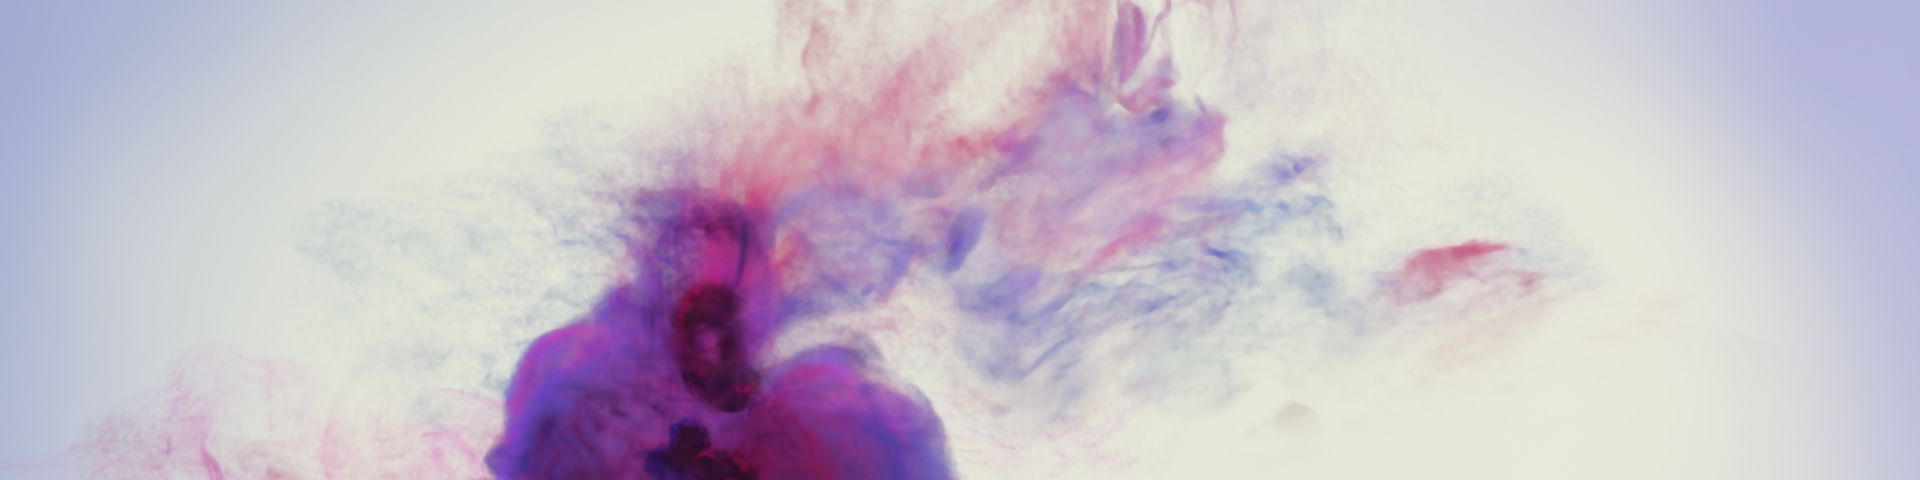 Lee Scratch Perry's vision of paradise